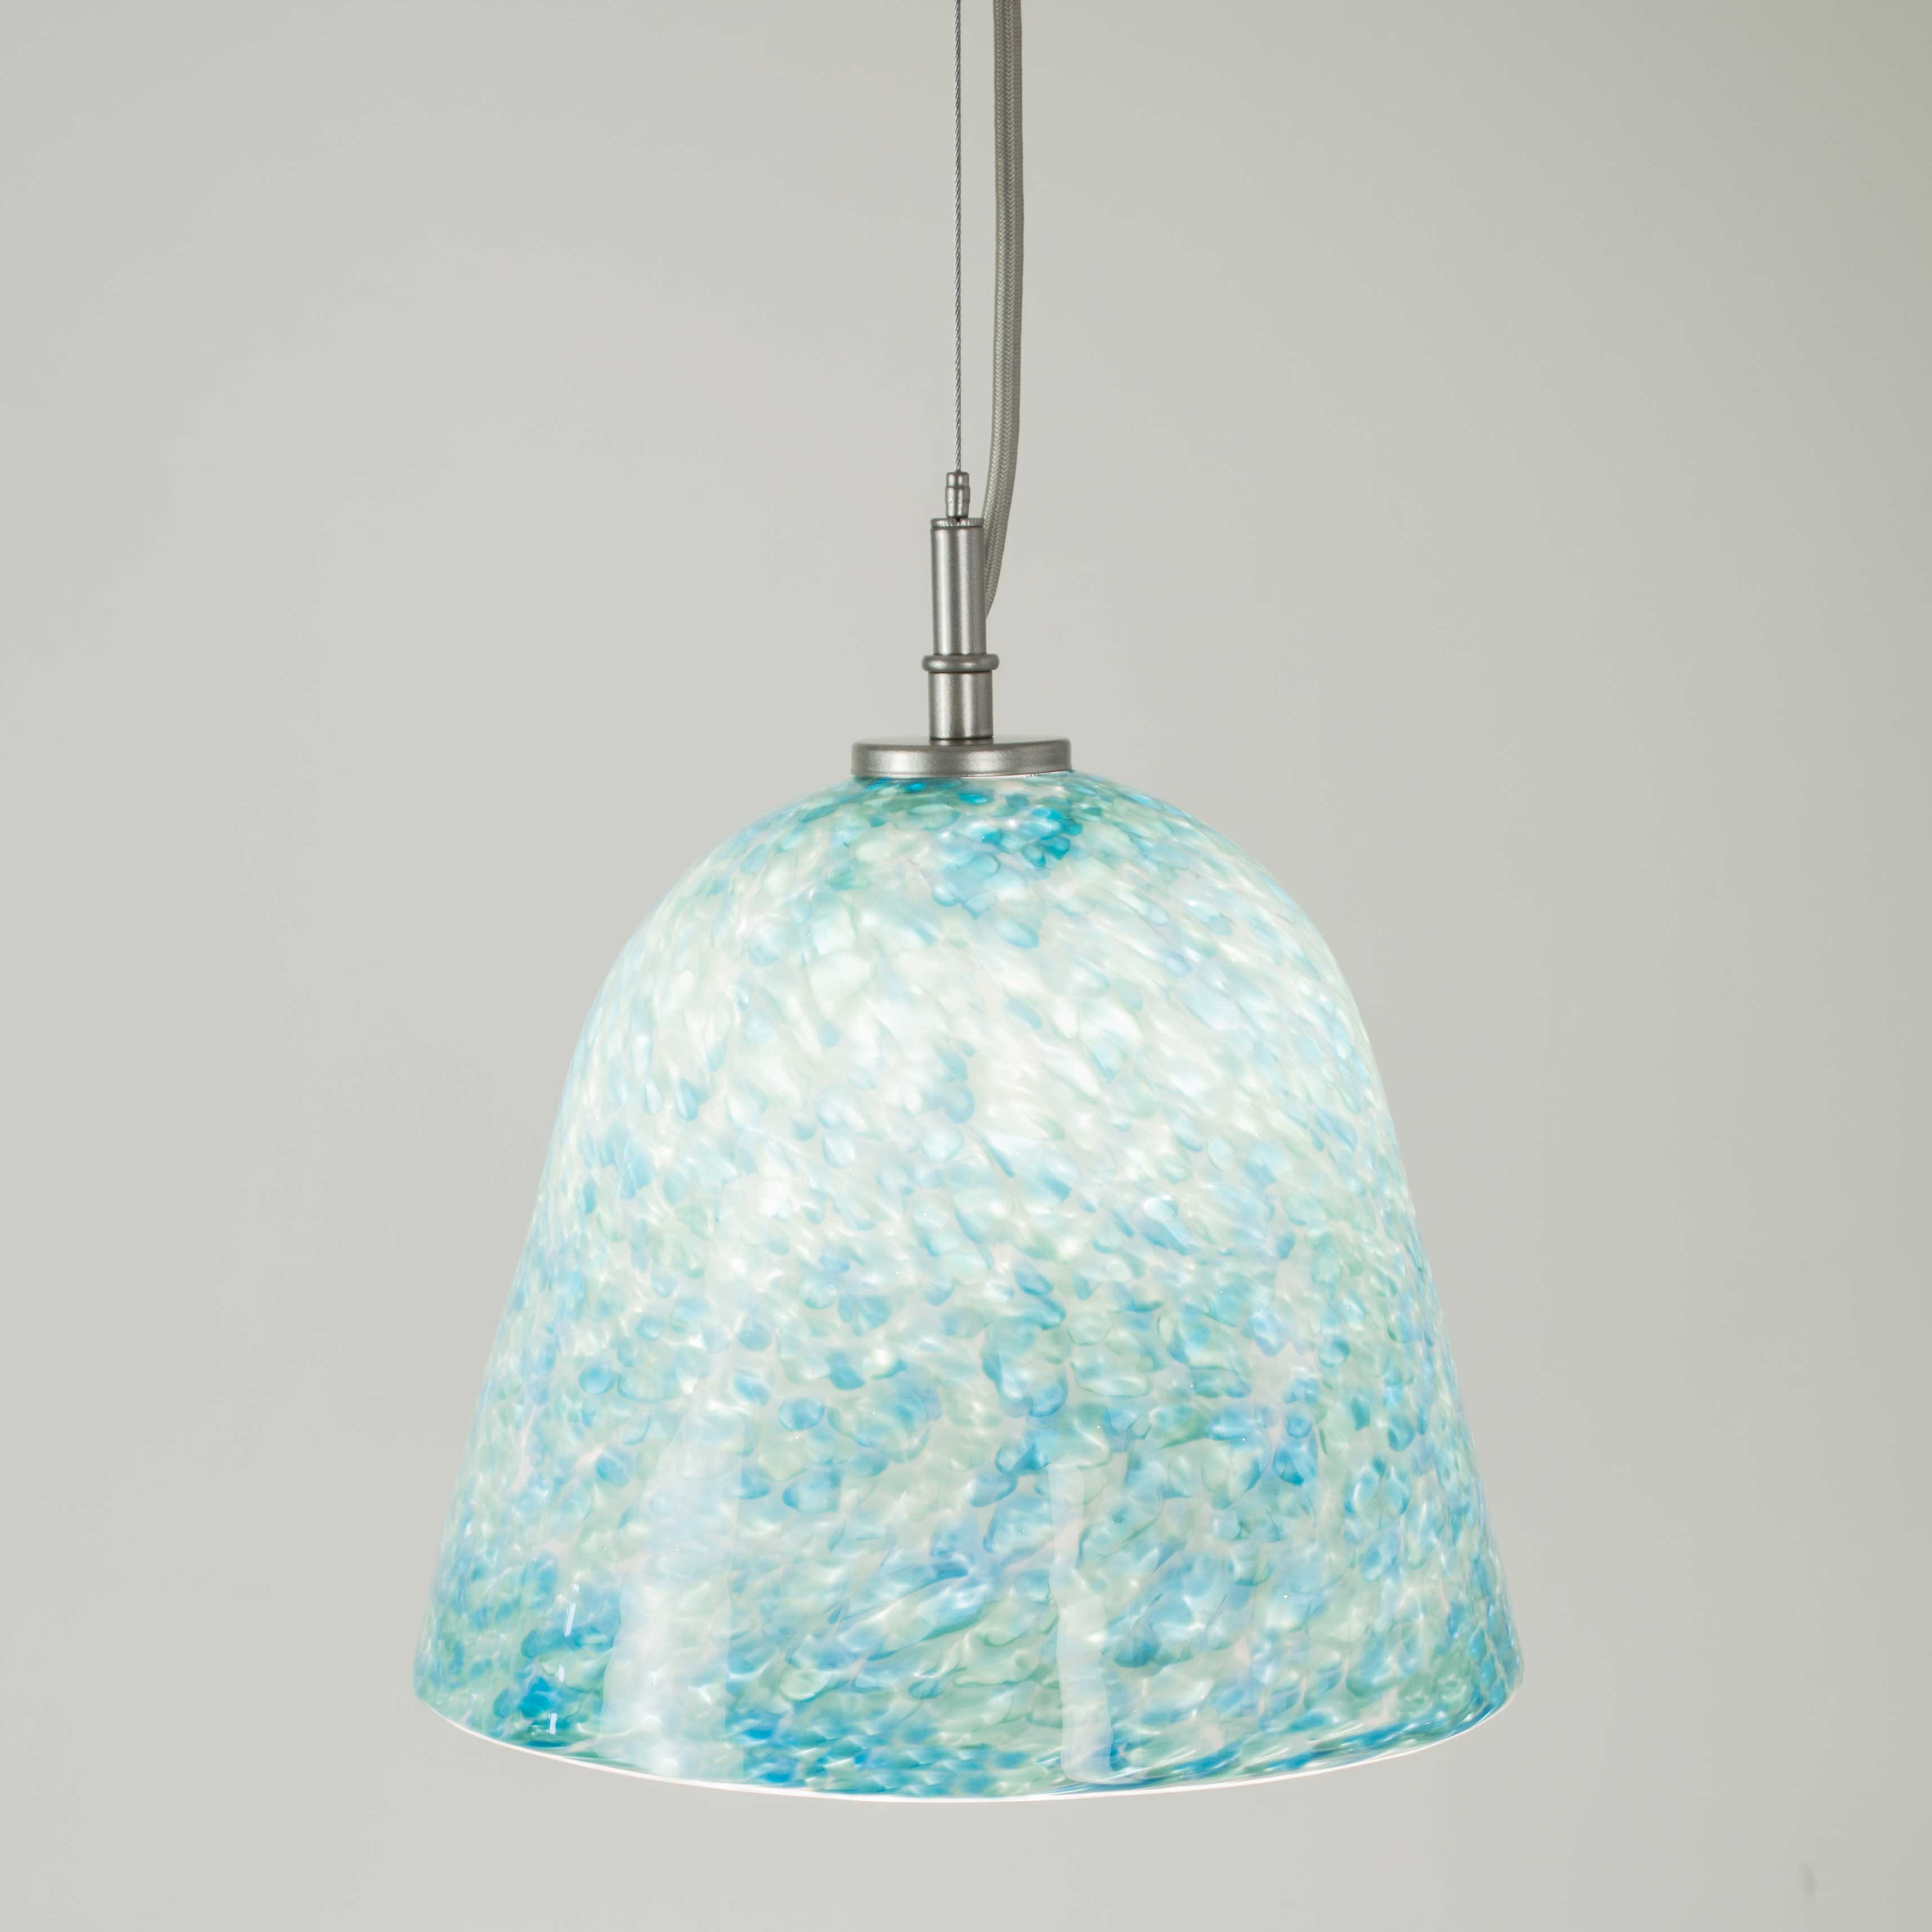 handcrafted pendant lighting